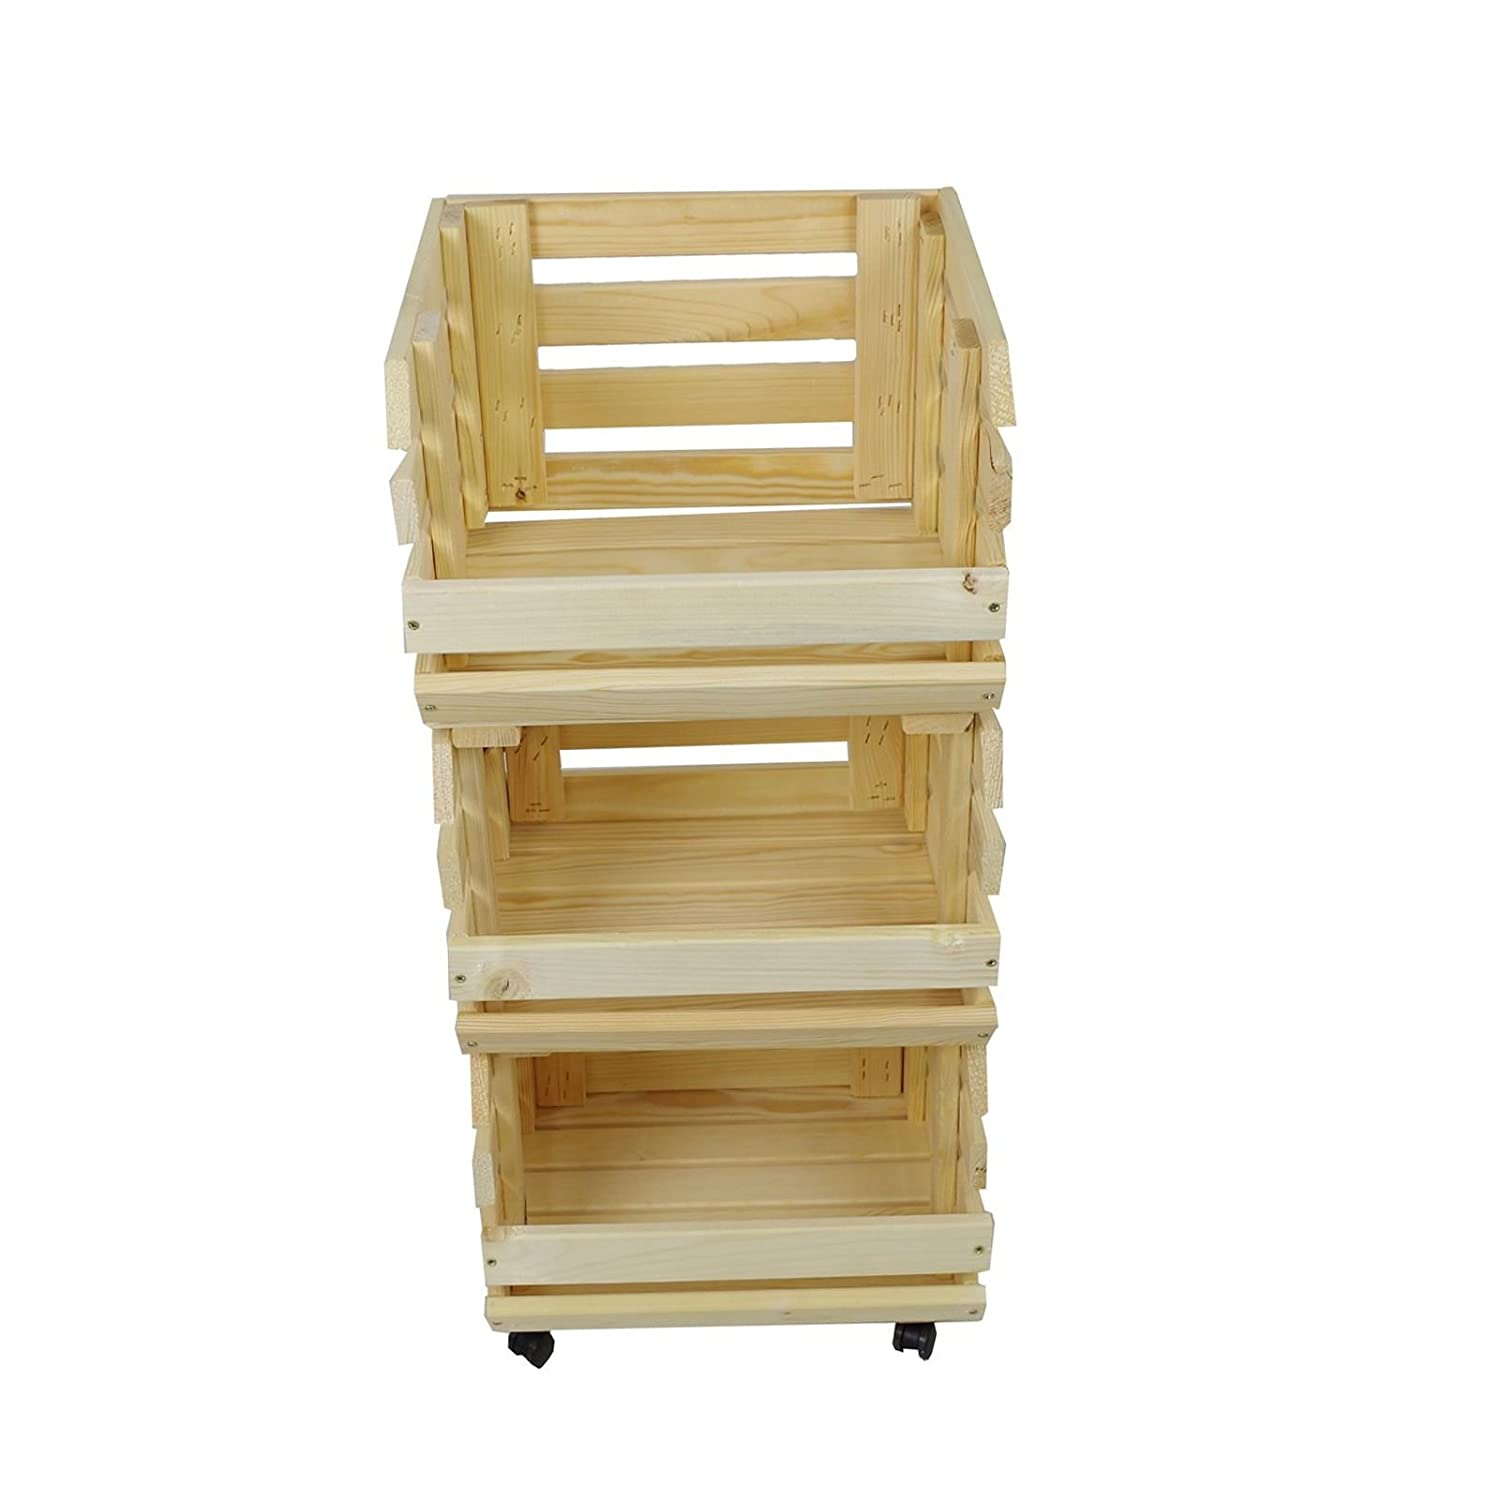 Solid Wood Potato Horde Fruit Stacking Potato Box with 4 Wheels Unbekannt